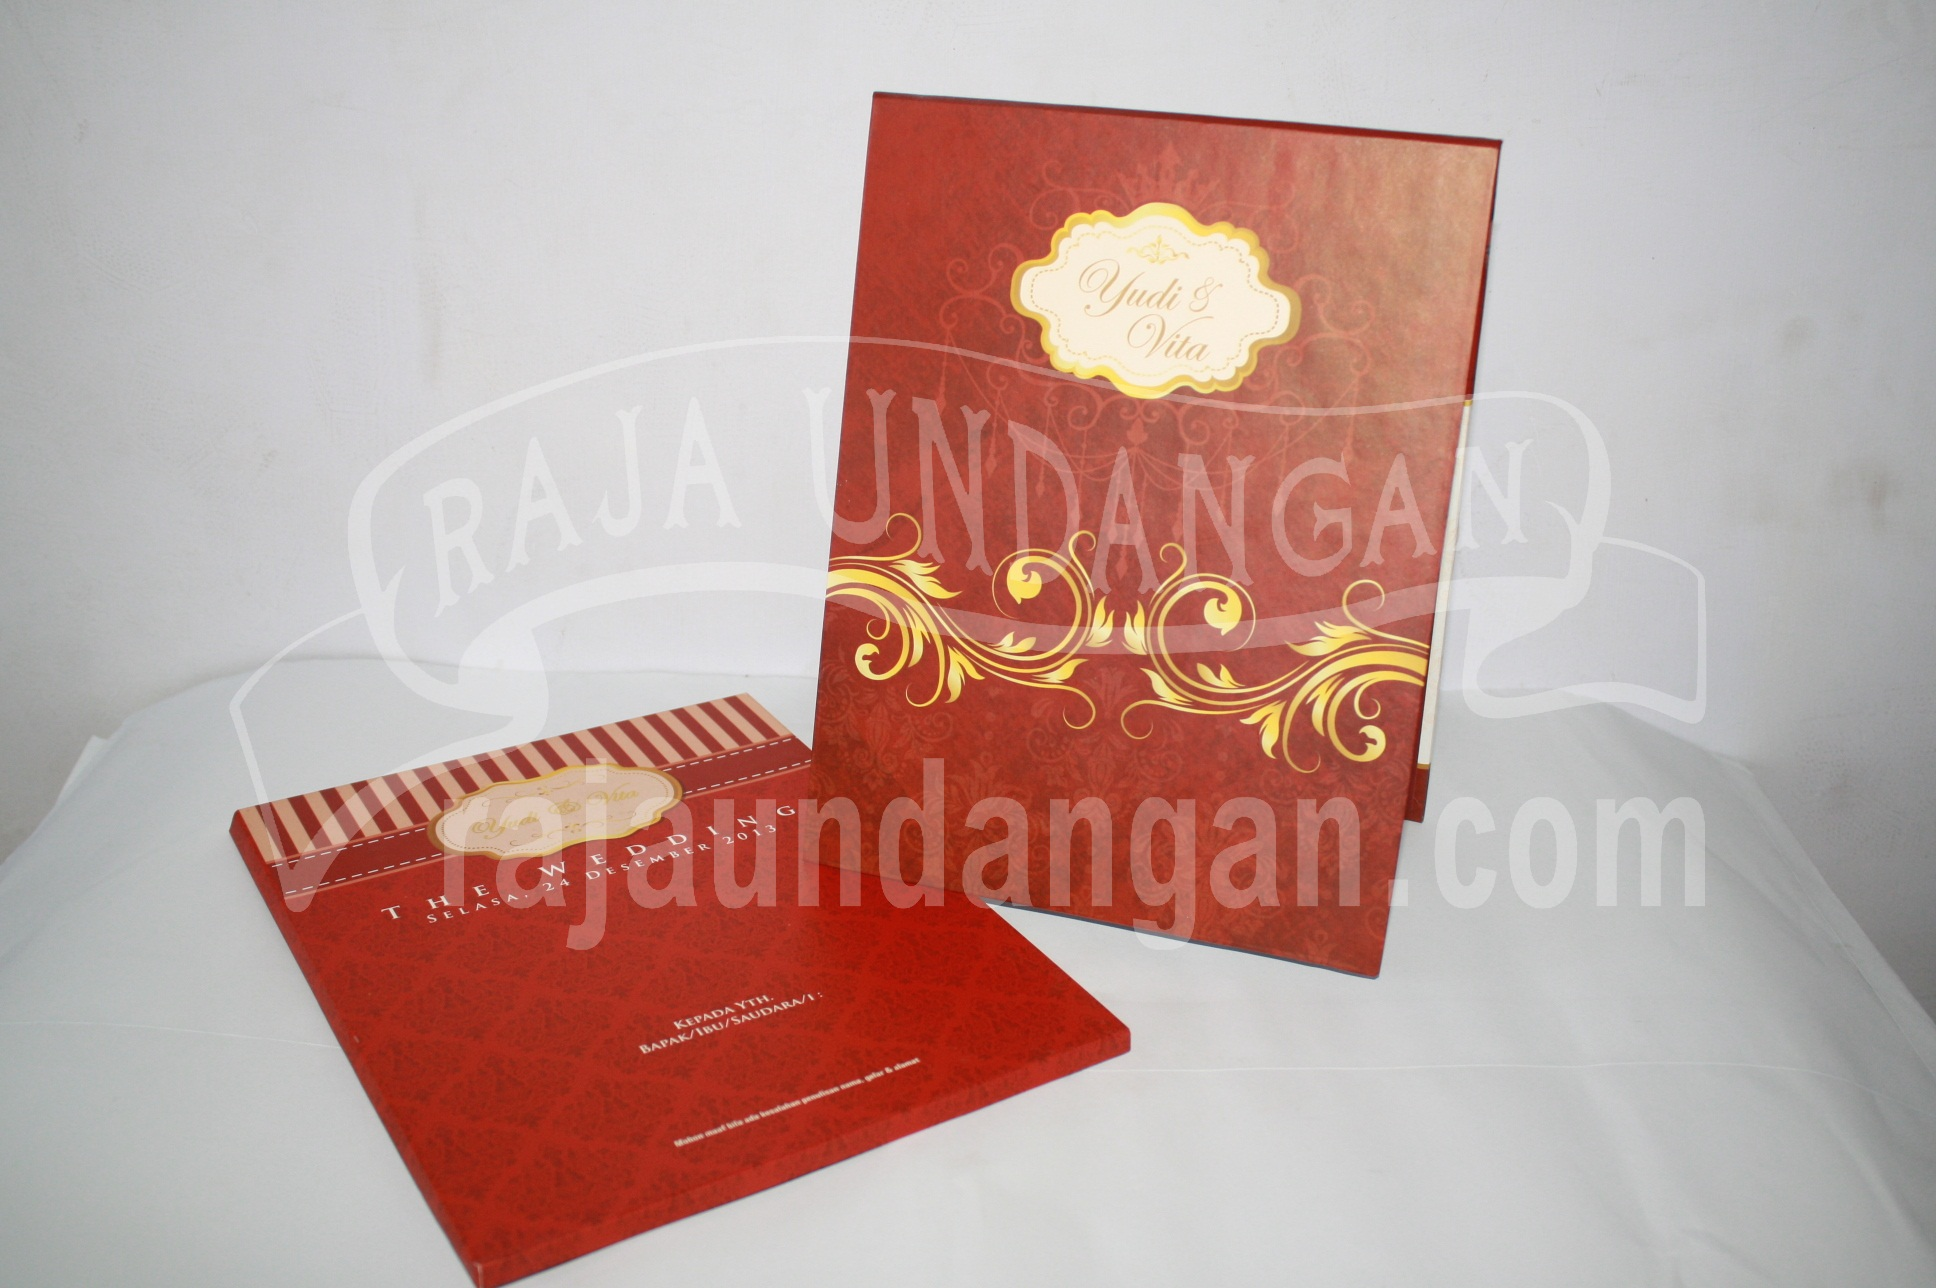 Undangan Pernikahan Hardcover Pop Up Pakai Amplop Yudi dan Vita EDC 441 - Membuat Wedding Invitations Eksklusif di Jeruk